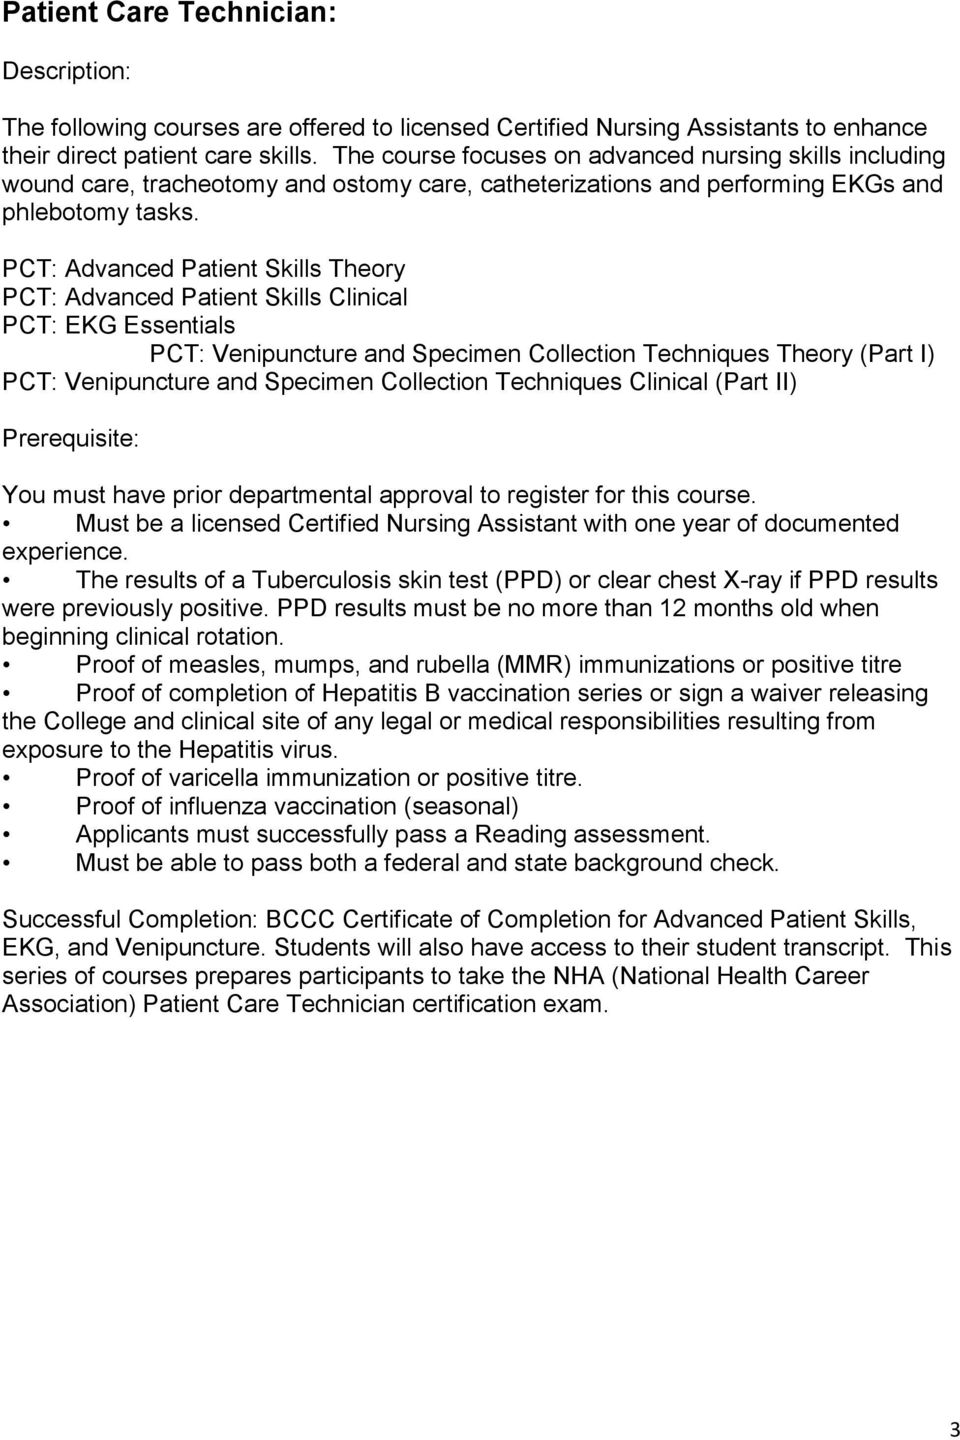 PCT: Advanced Patient Skills Theory PCT: Advanced Patient Skills Clinical PCT: EKG Essentials PCT: Venipuncture and Specimen Collection Techniques Theory (Part I) PCT: Venipuncture and Specimen